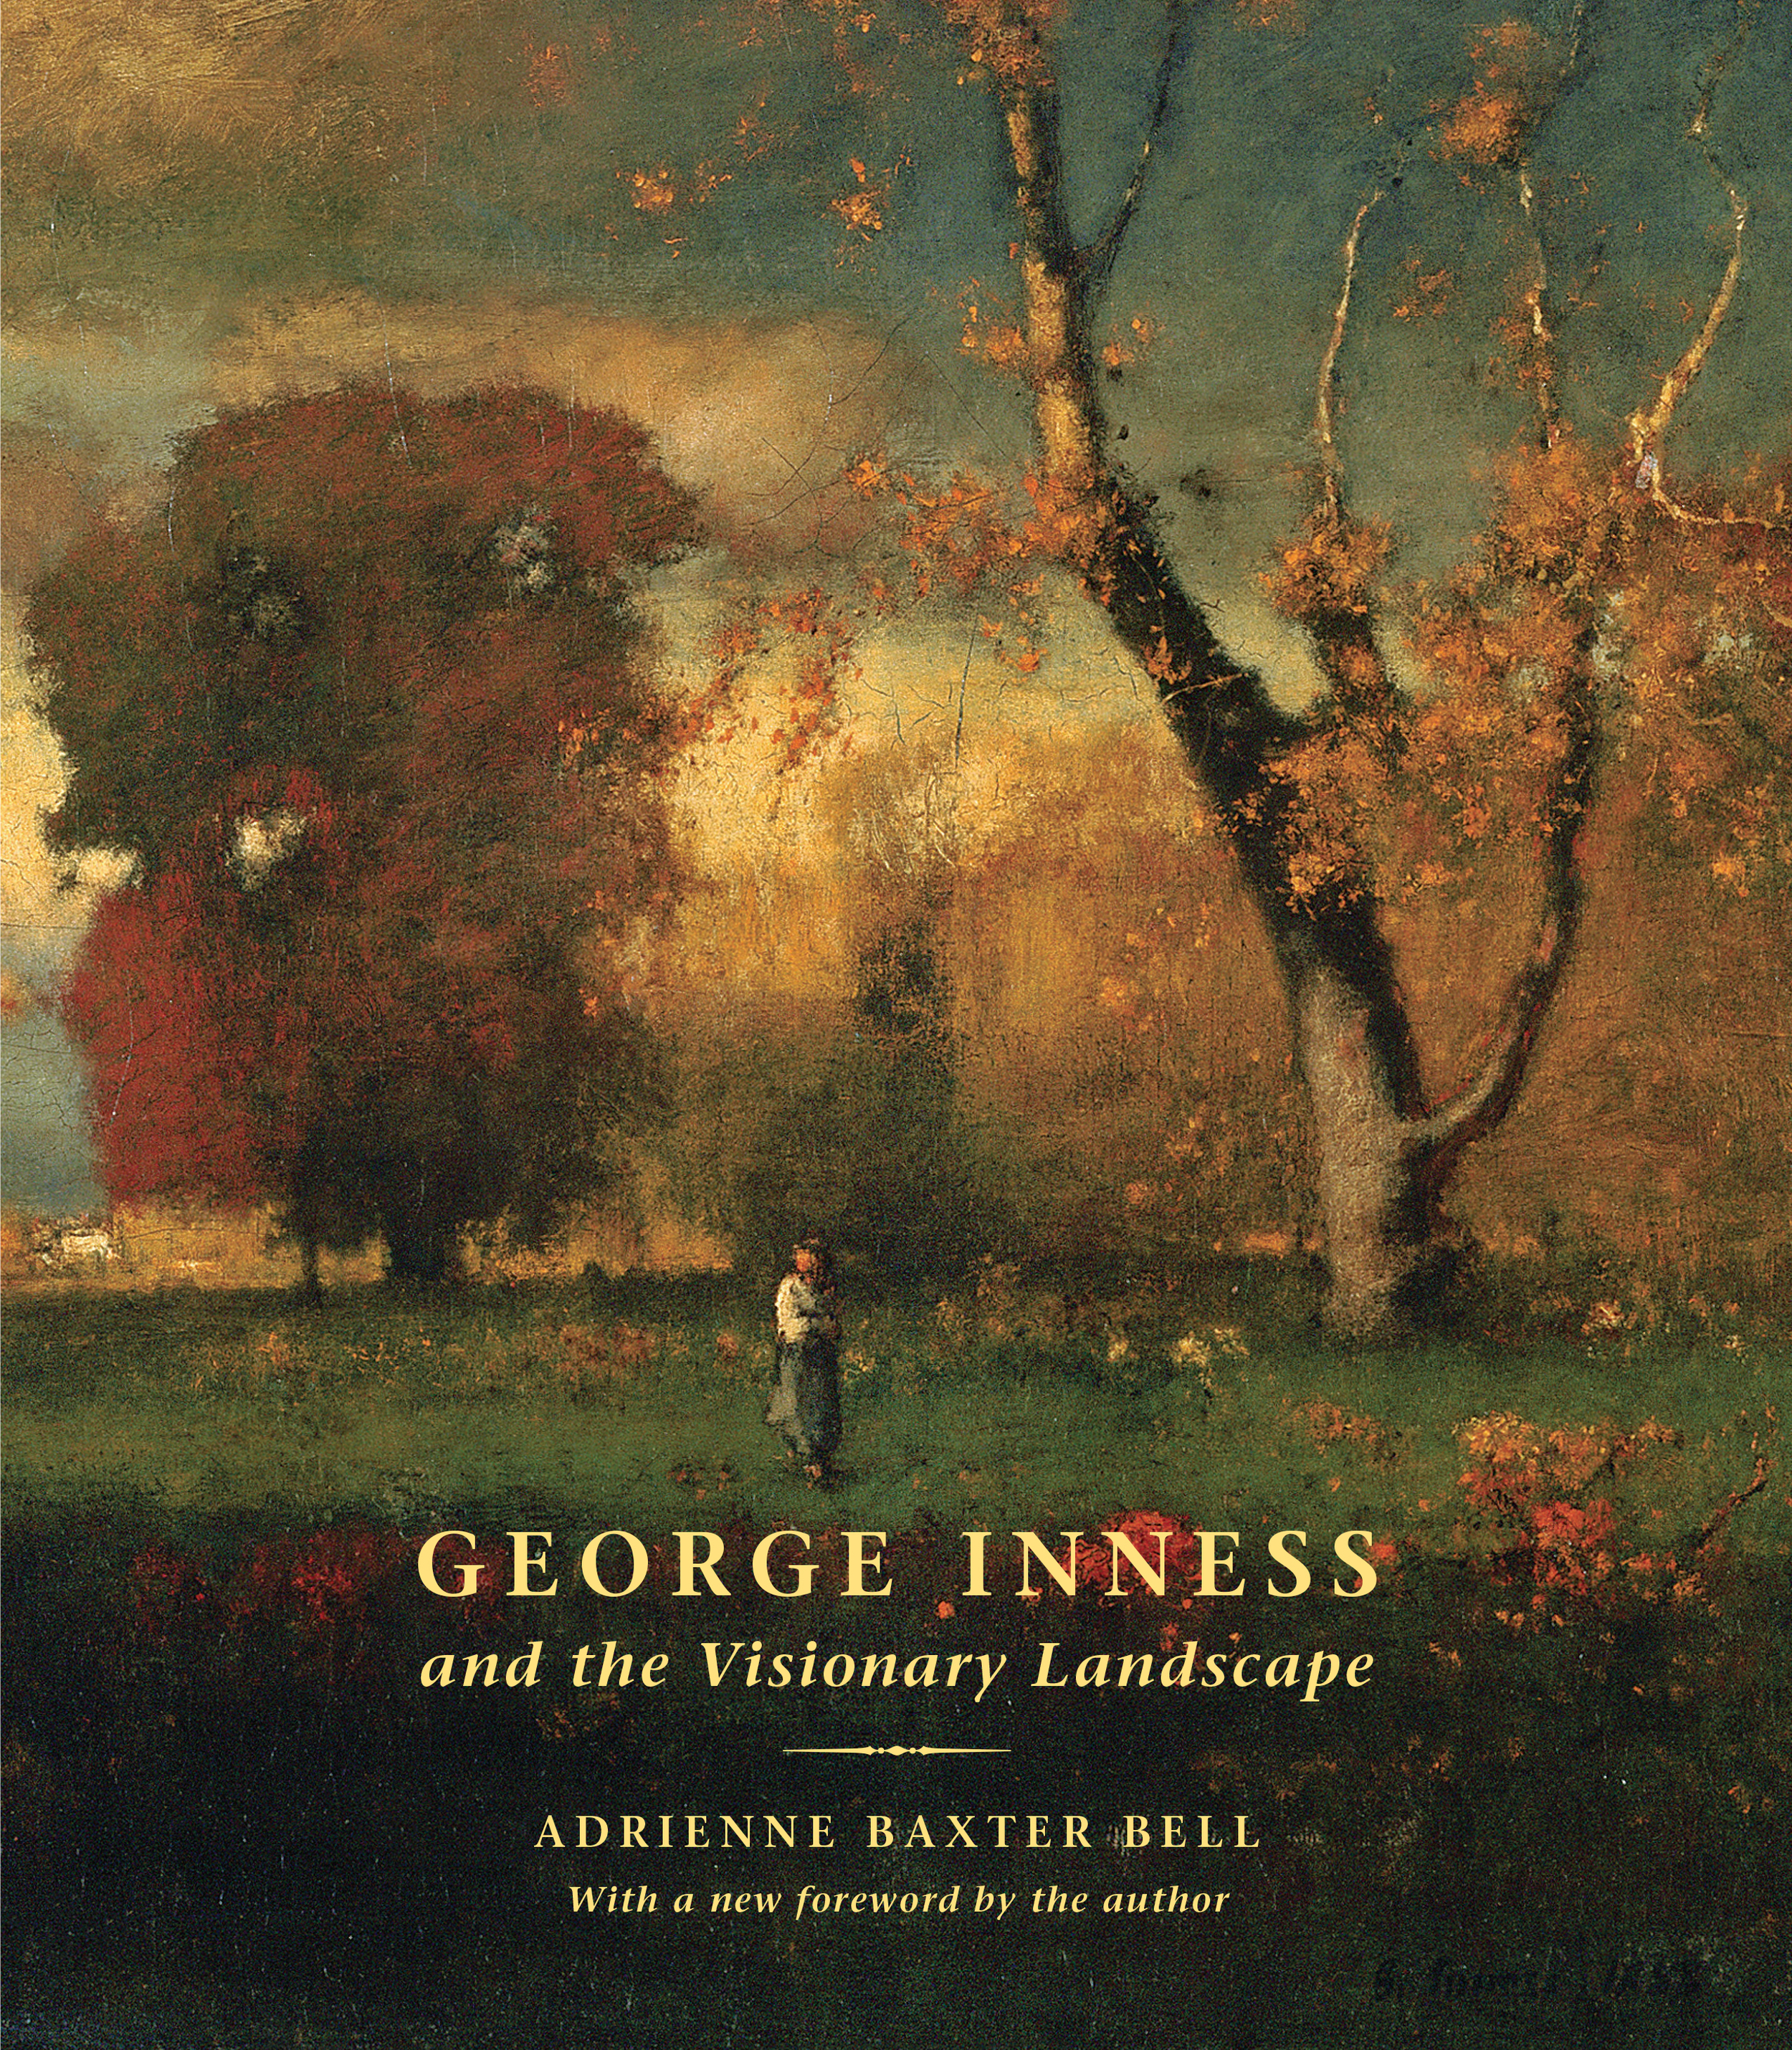 George Inness and the Visonary Landscape